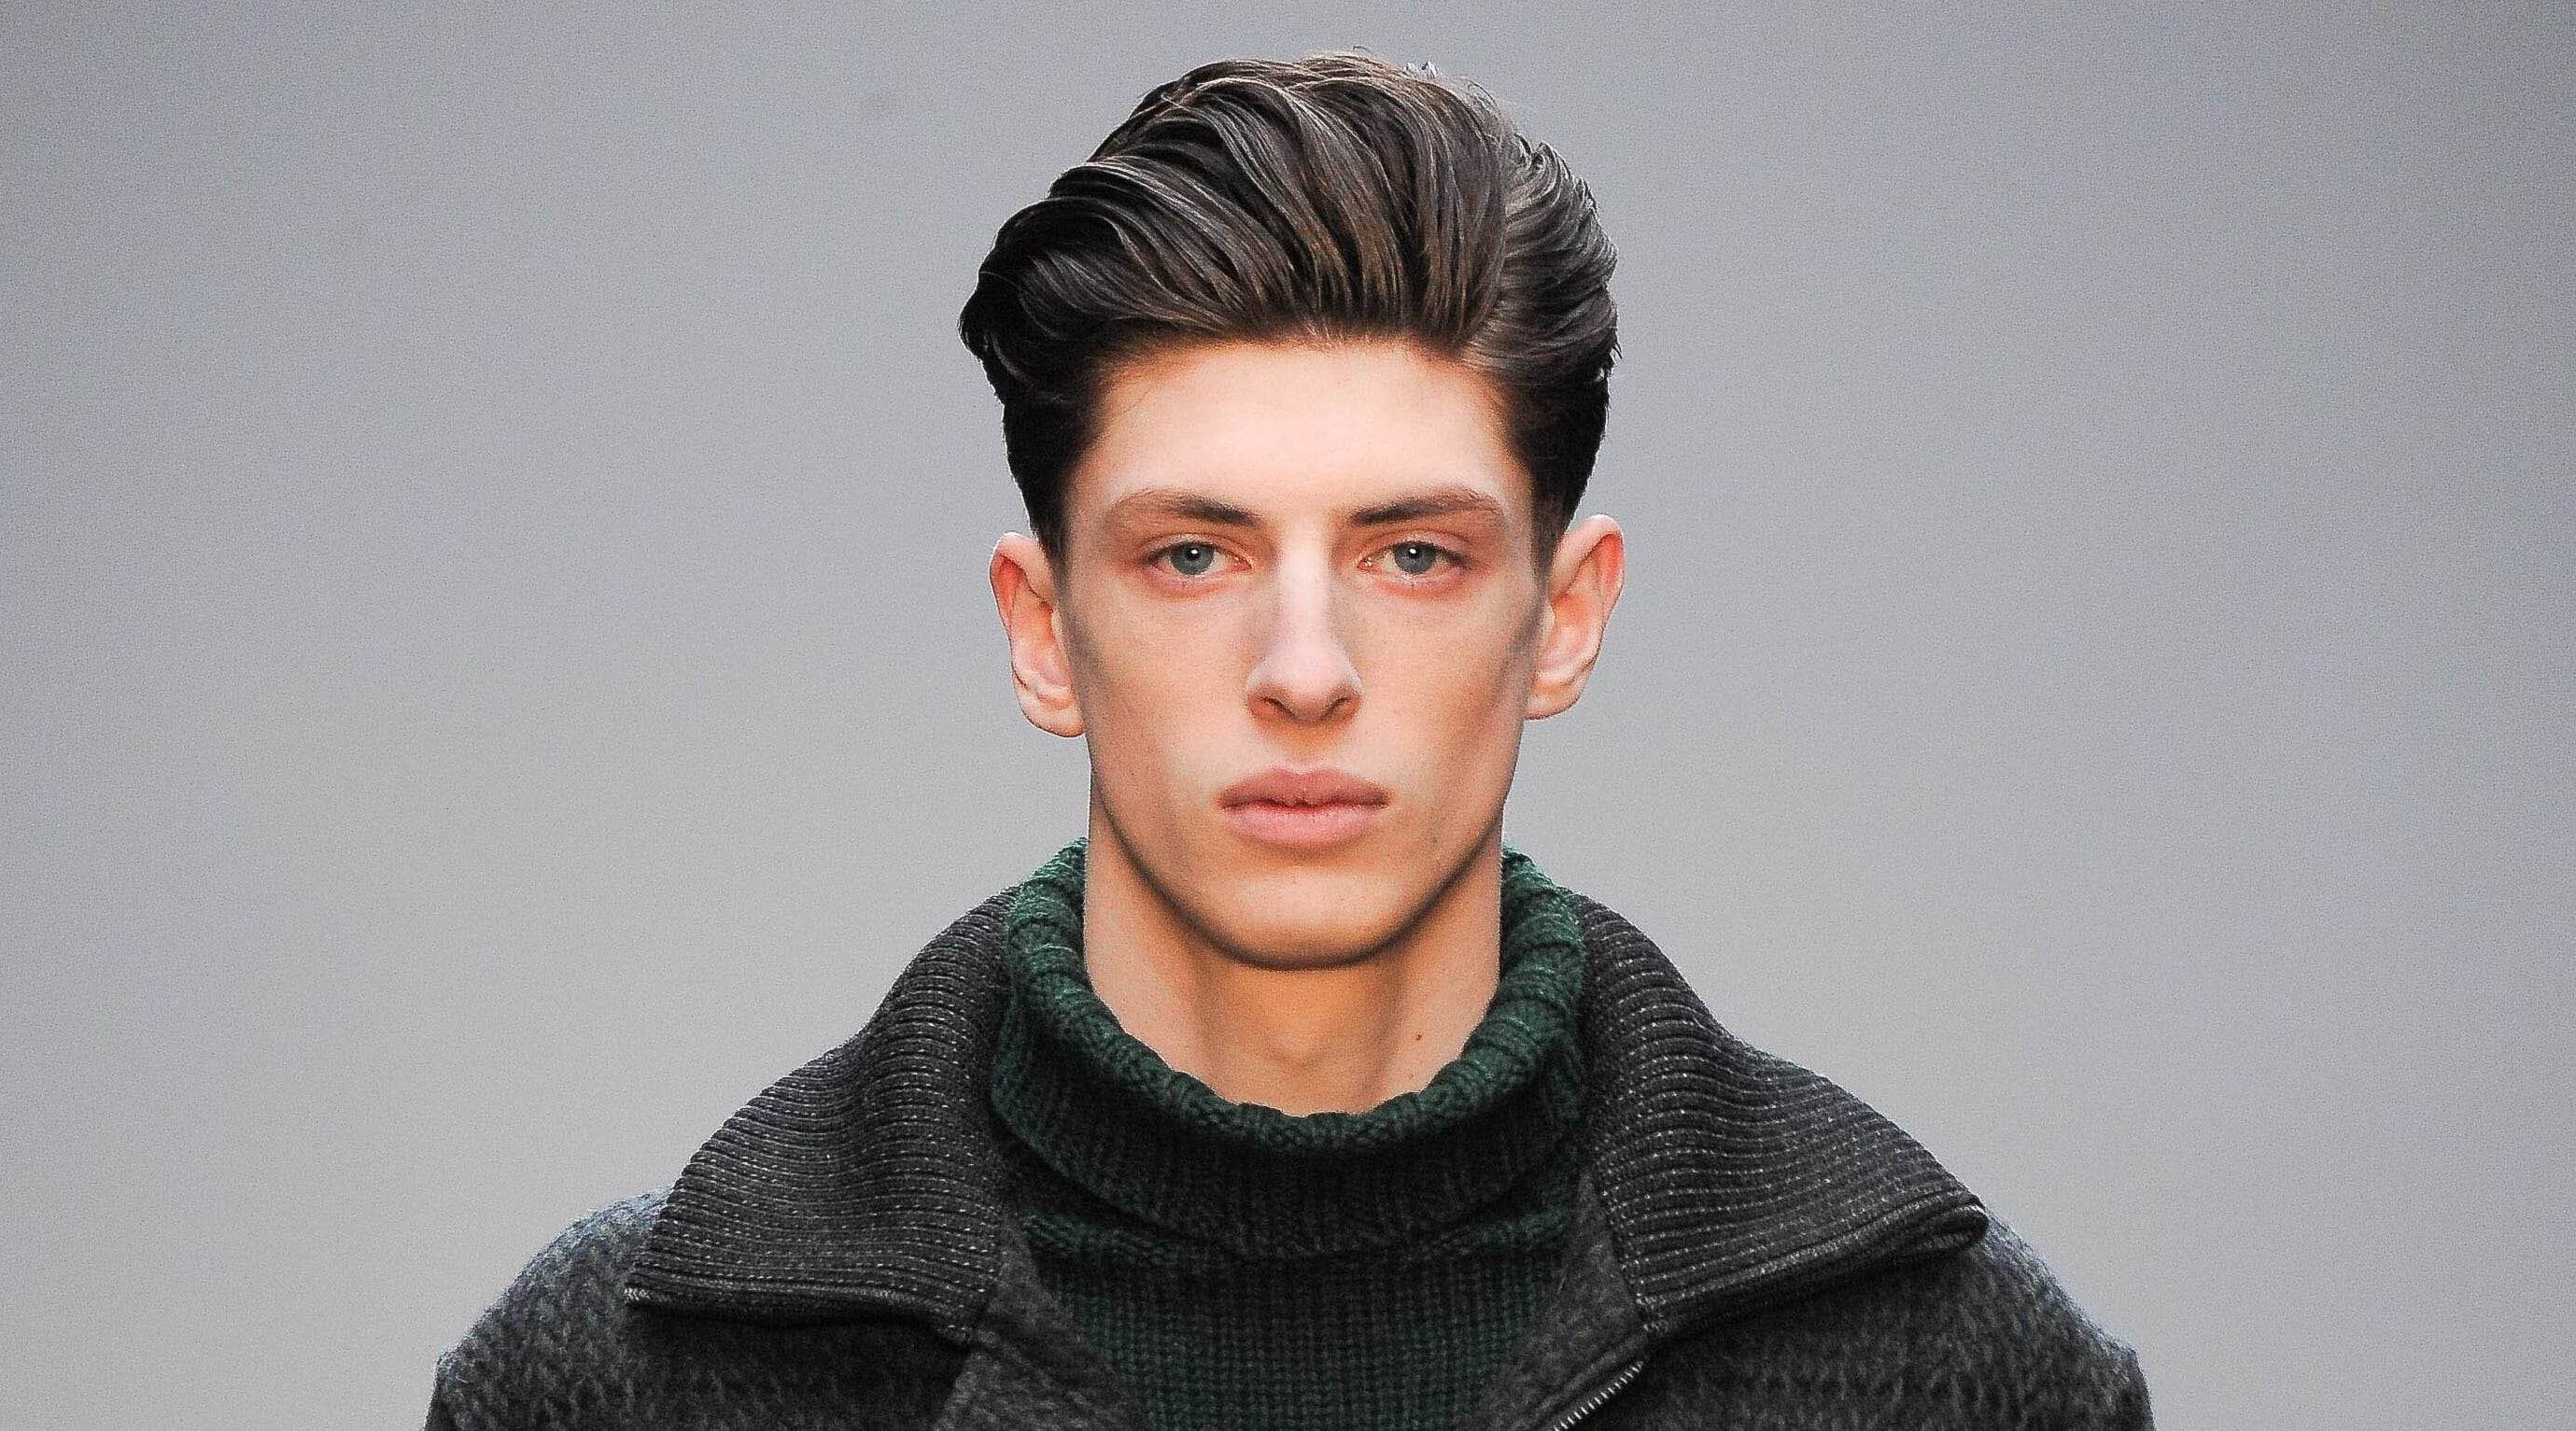 man with dark hair on the runway styled into a swept back quiff